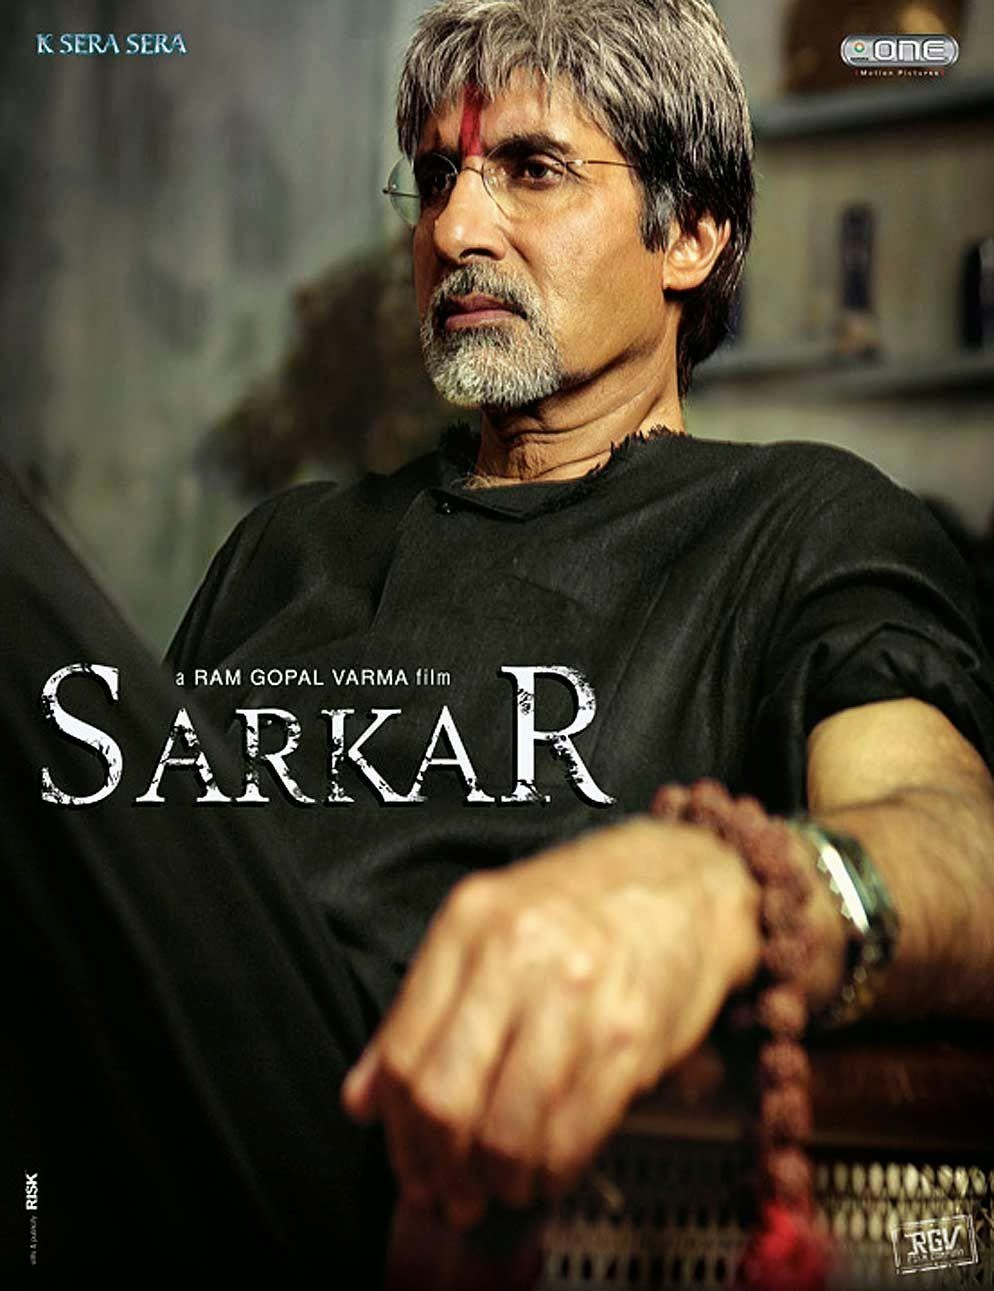 watch Sarkar Hindi HD movie online | Amitabh Bachchan, Katrina Kaif